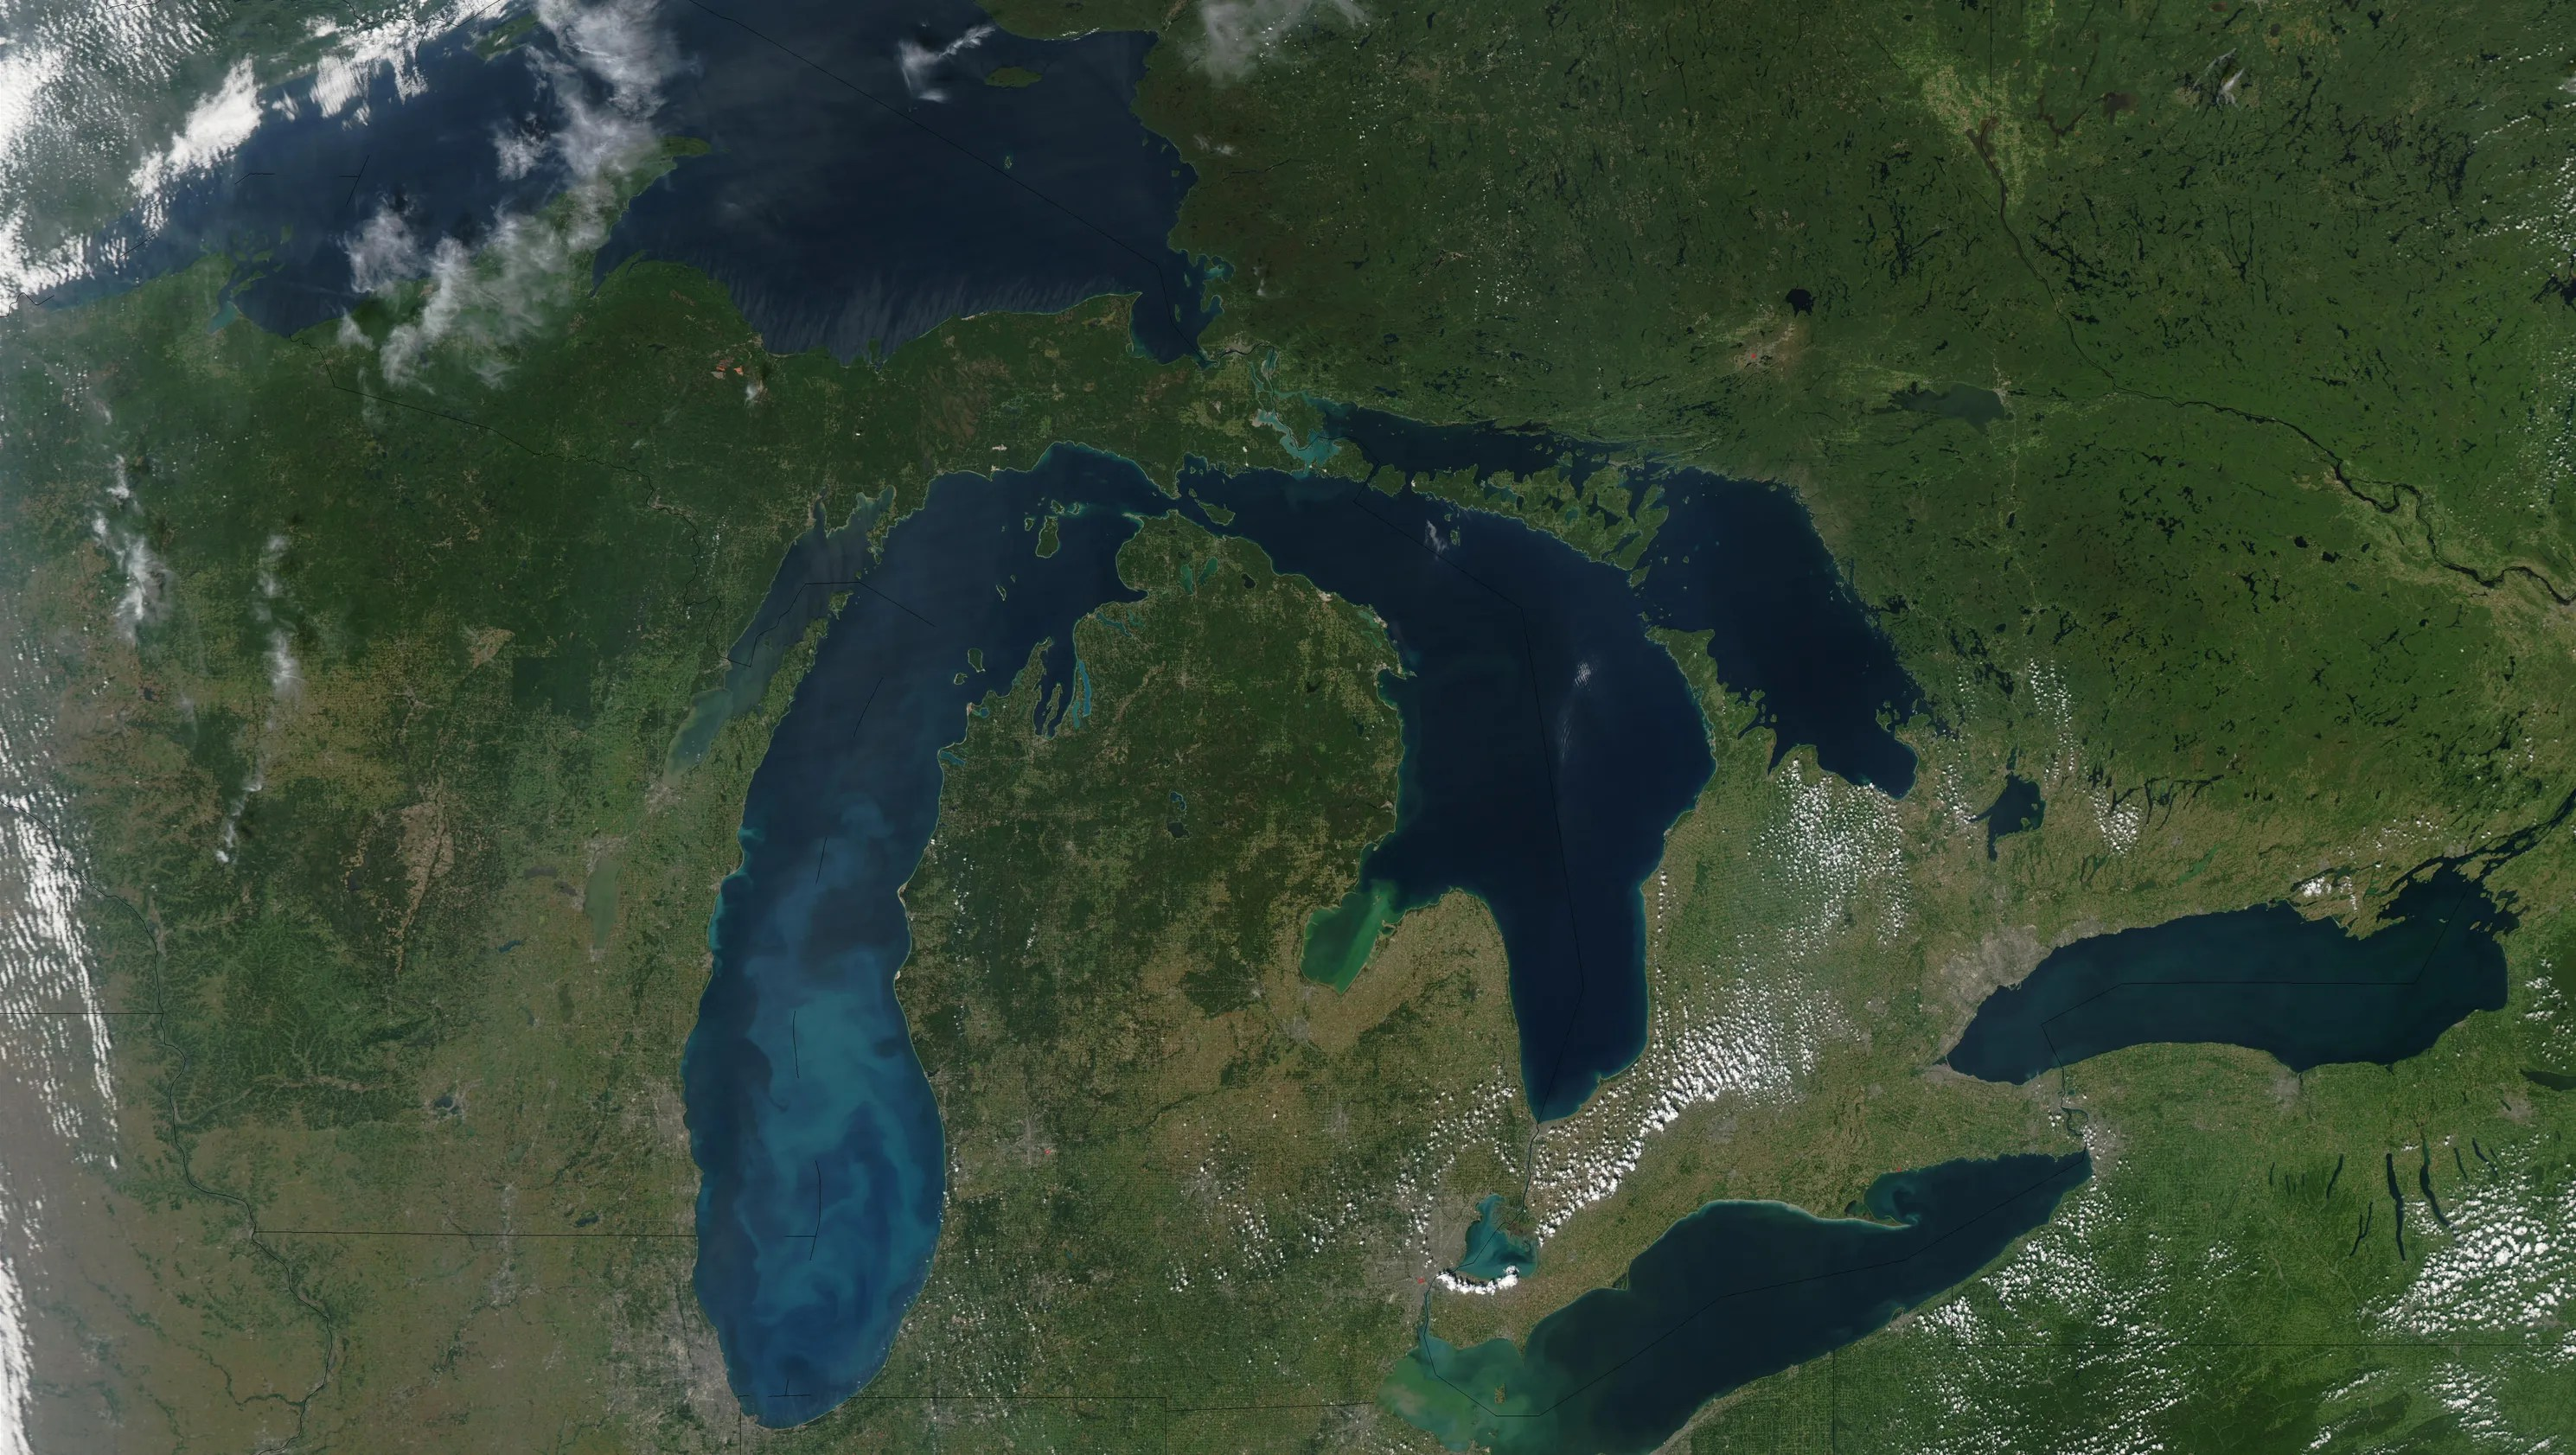 Dan Egan S Book Chronicles How Humans Messed Up Great Lakes